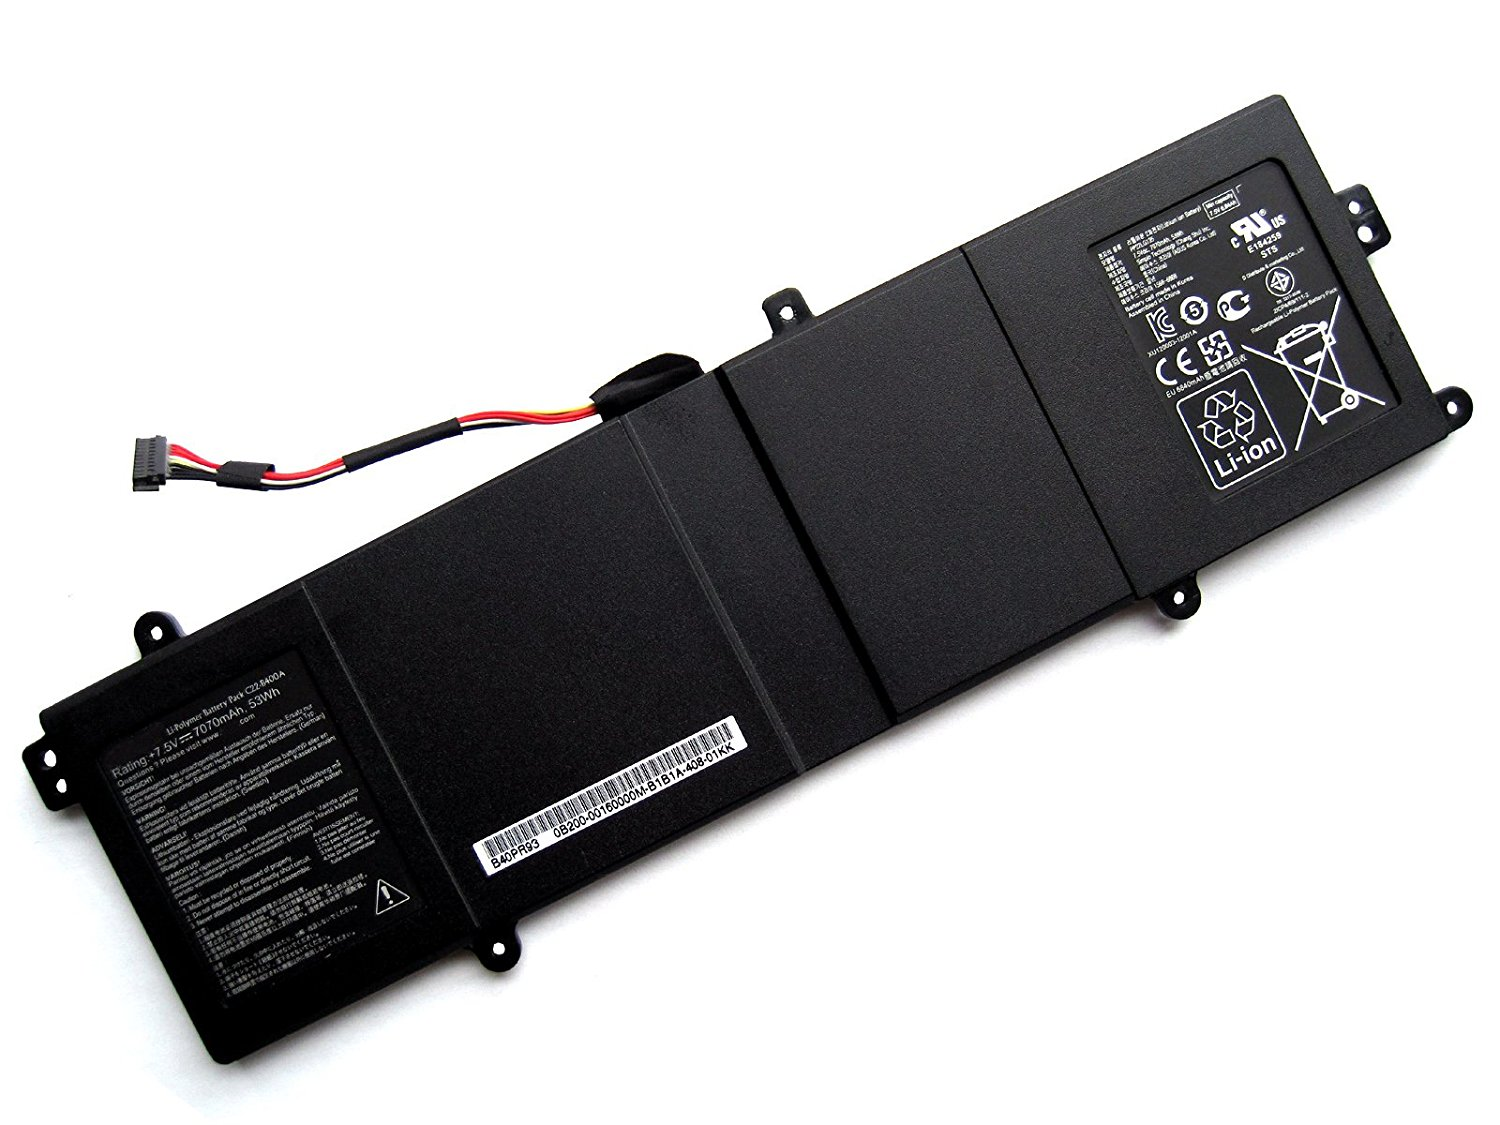 ZWXJ Laptop Battery C22-B400A (7.5V 53wh 7070MAH) For ASUS PRO ADVANCED BU400 BU400V BU400A BU401LG C22-B400A B400A Ultrabook Series